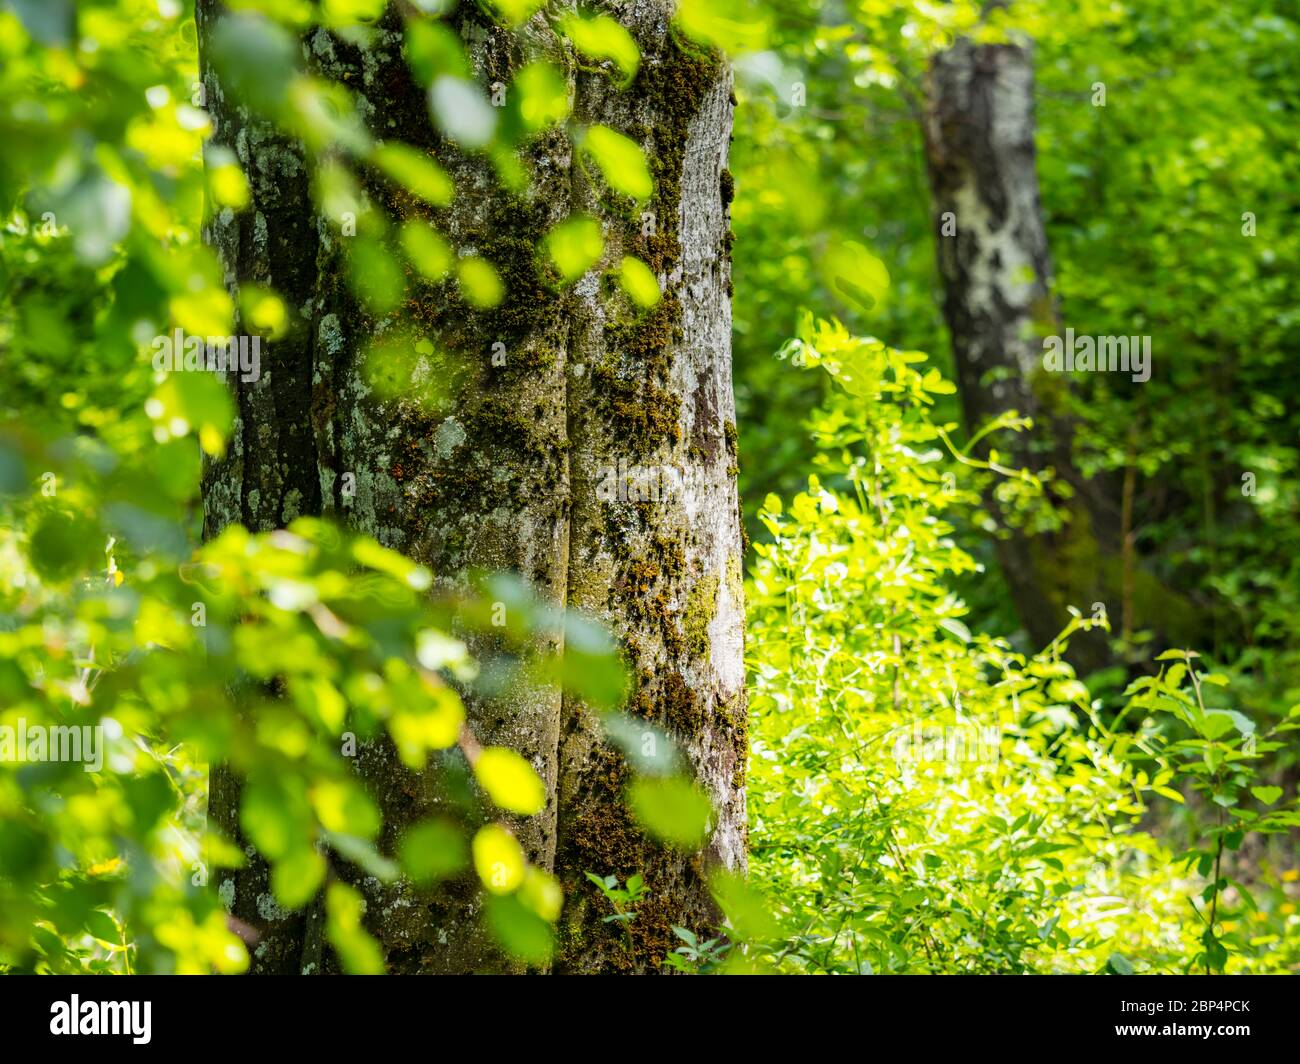 Stunning Spring Green nature color in forest tree trunk isolated in focus view through leaves Stock Photo